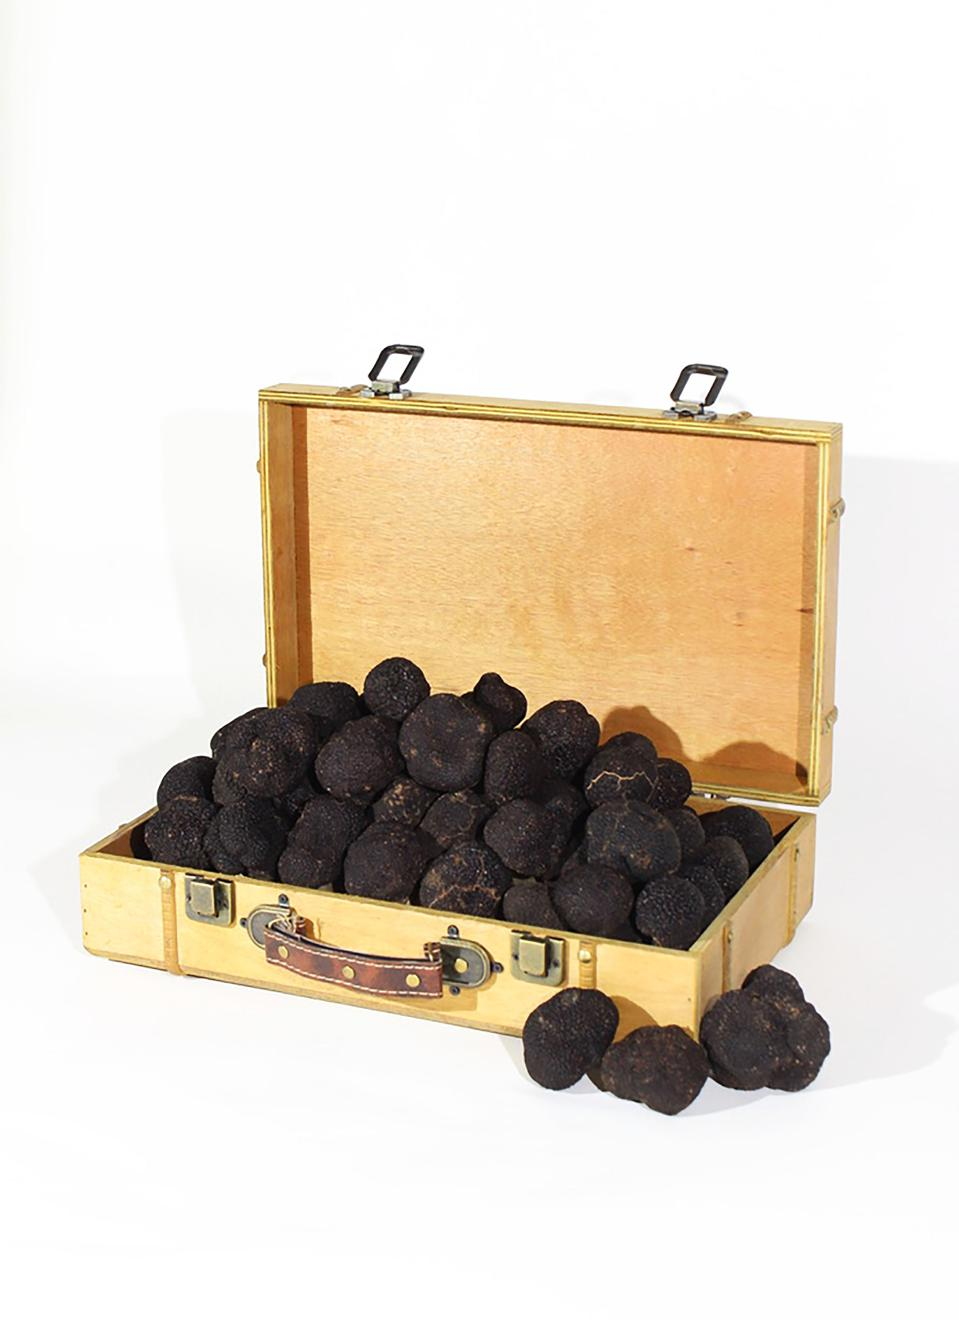 A gold suitcase of black truffles costing $ 1,000 a pound,